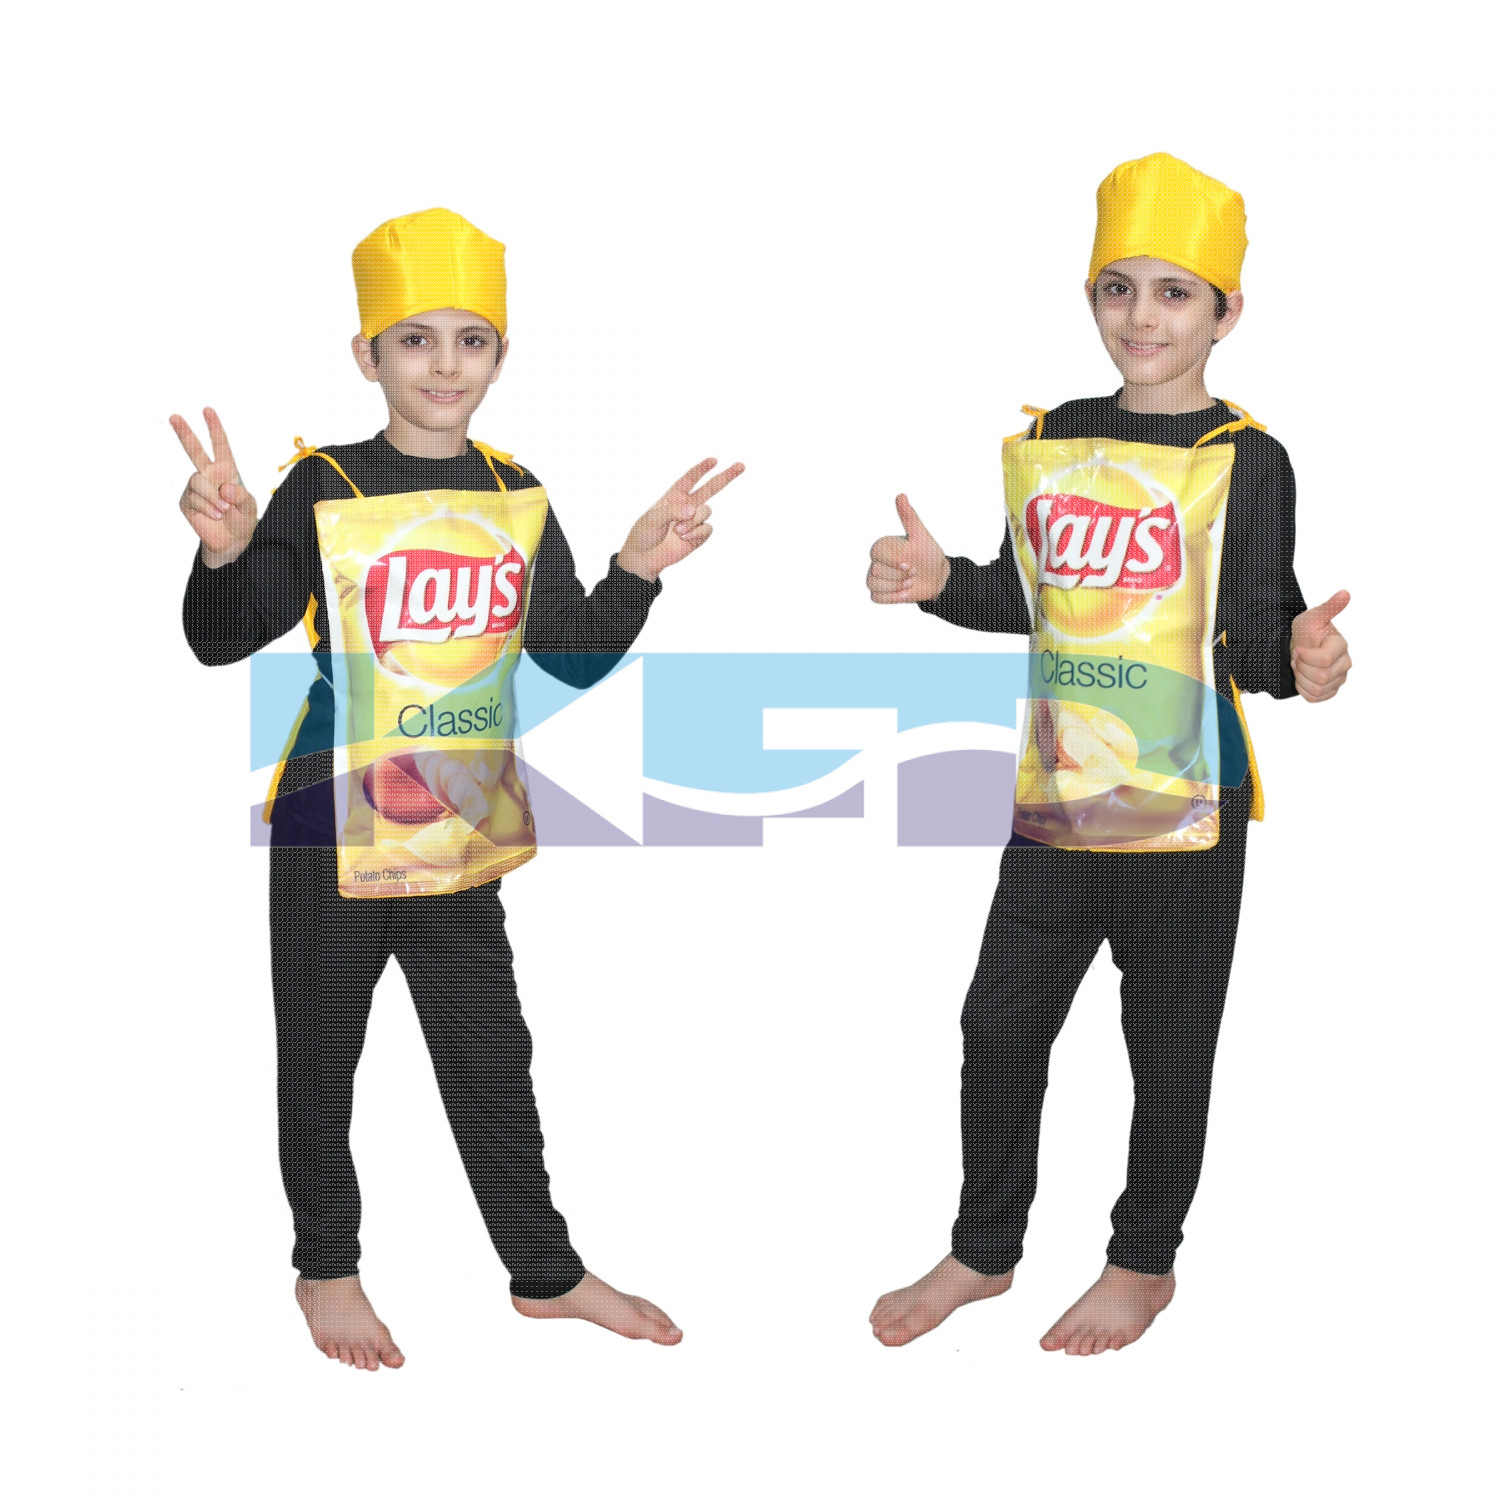 Lays fancy dress for kids,Object Costume for School Annual function/Theme Party/Competition/Stage Shows Dress